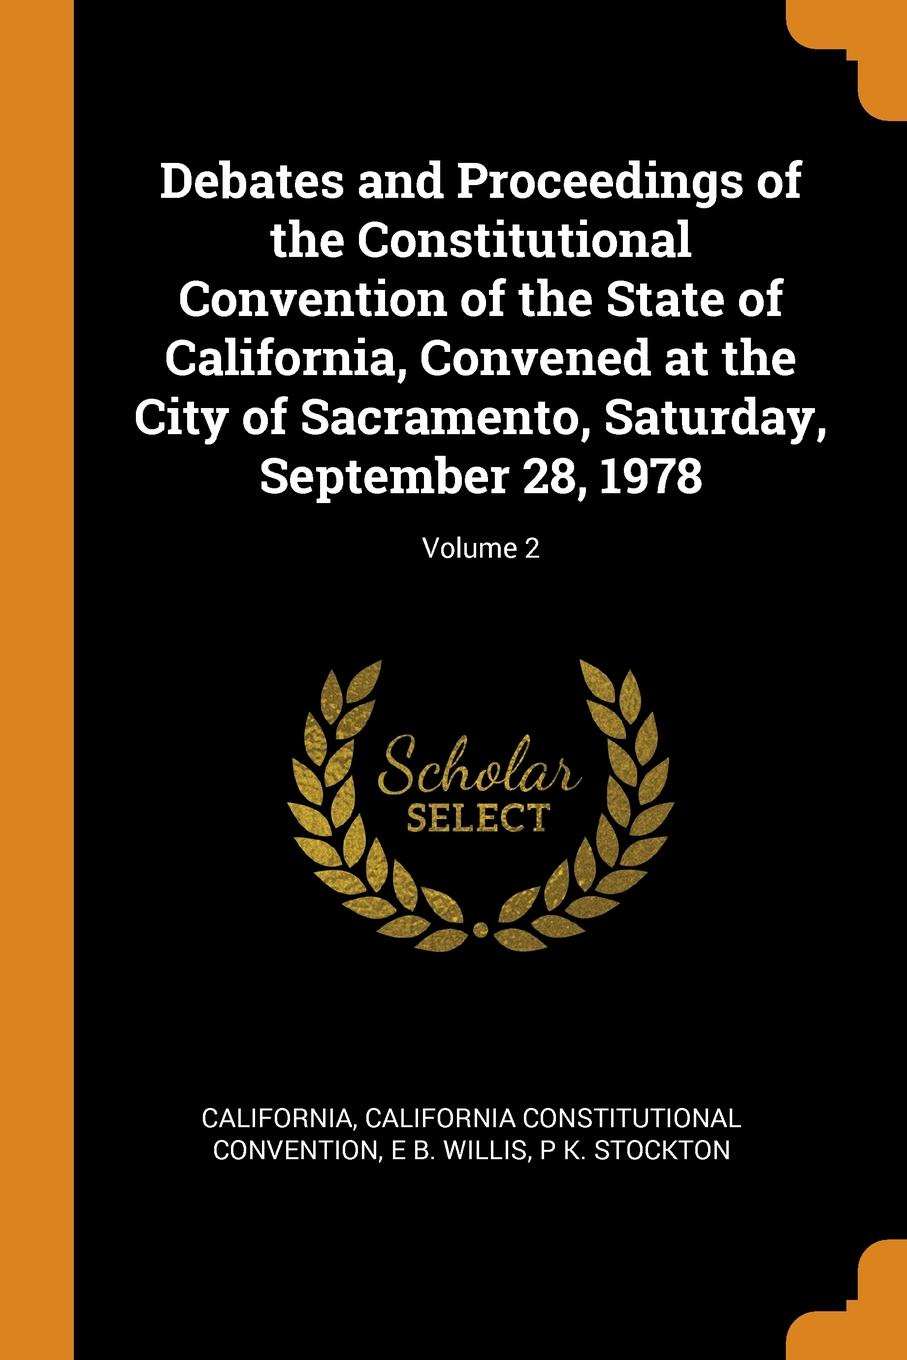 Debates and Proceedings of the Constitutional Convention of the State of California, Convened at the City of Sacramento, Saturday, September 28, 1978; Volume 2. California, California Constitutional Convention, E B. Willis